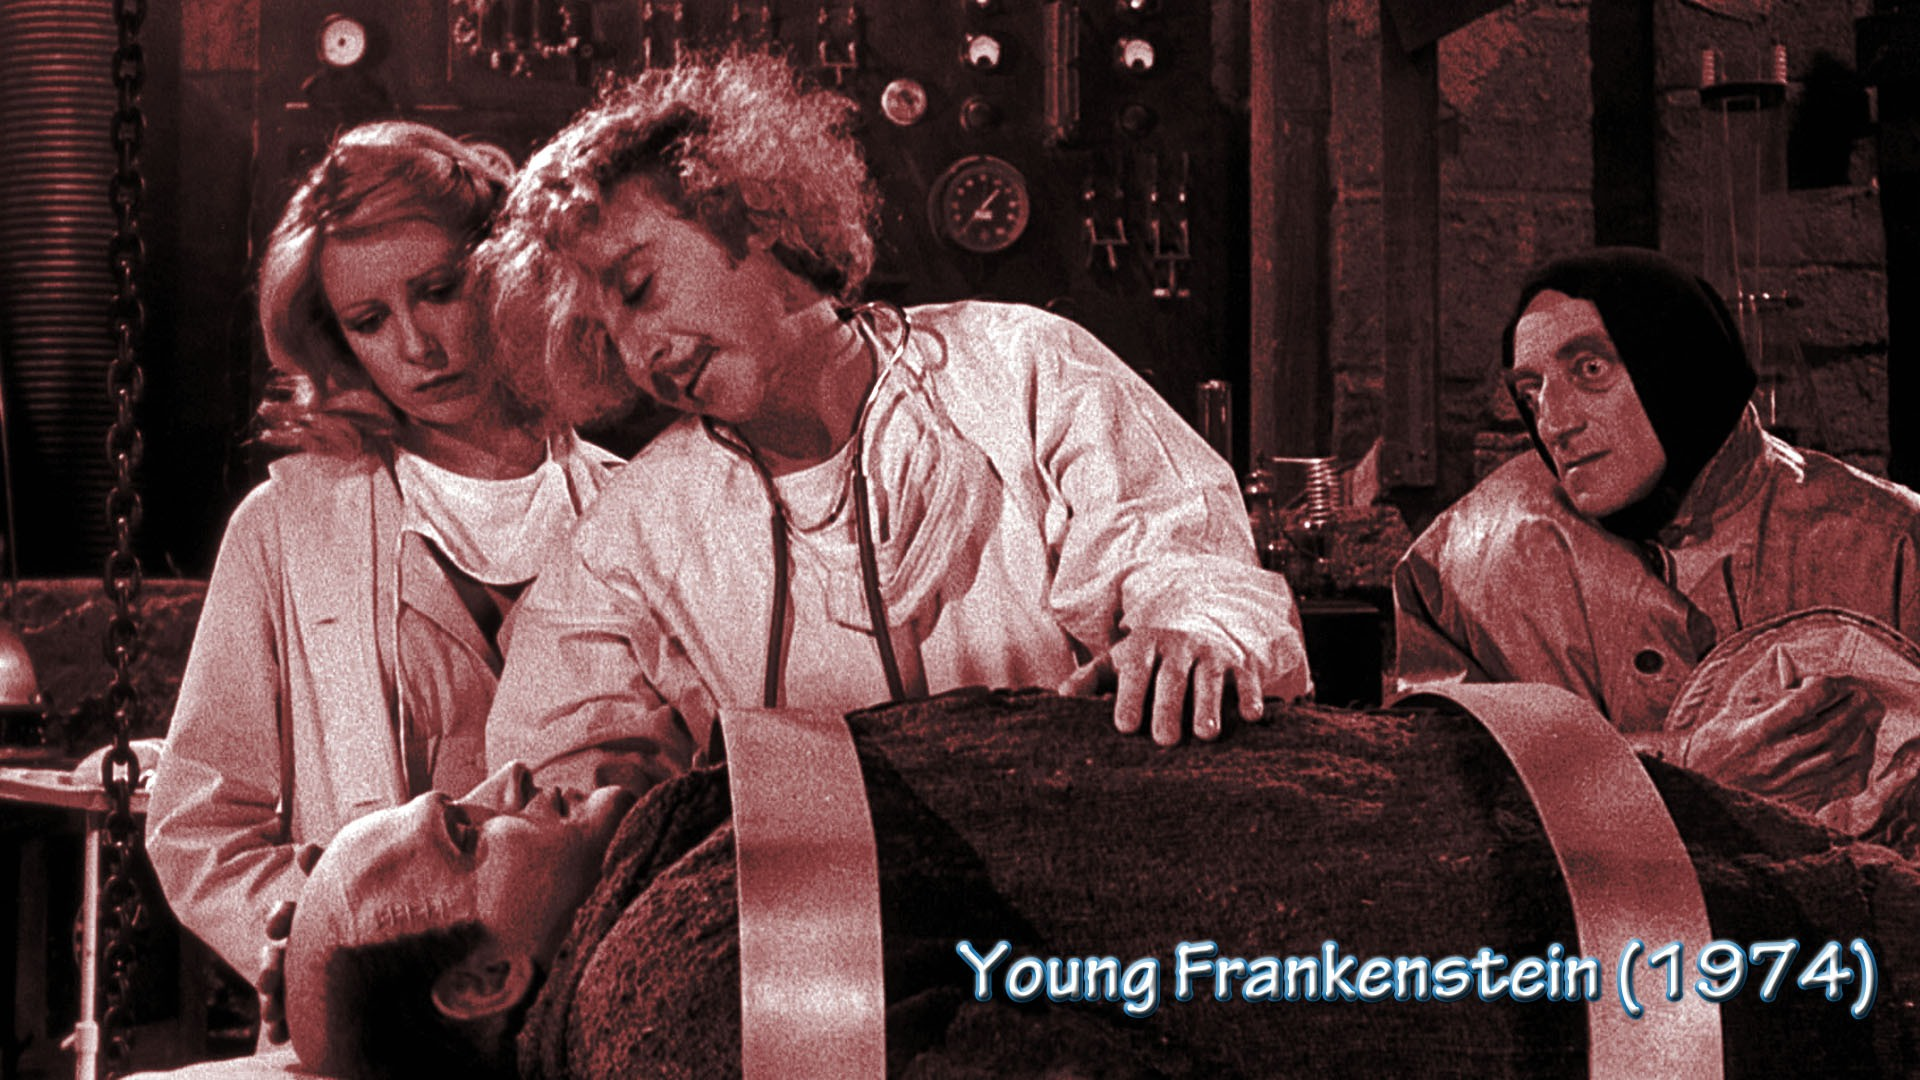 Young Frankenstein 1974 desktop wallpaper 1920x1080